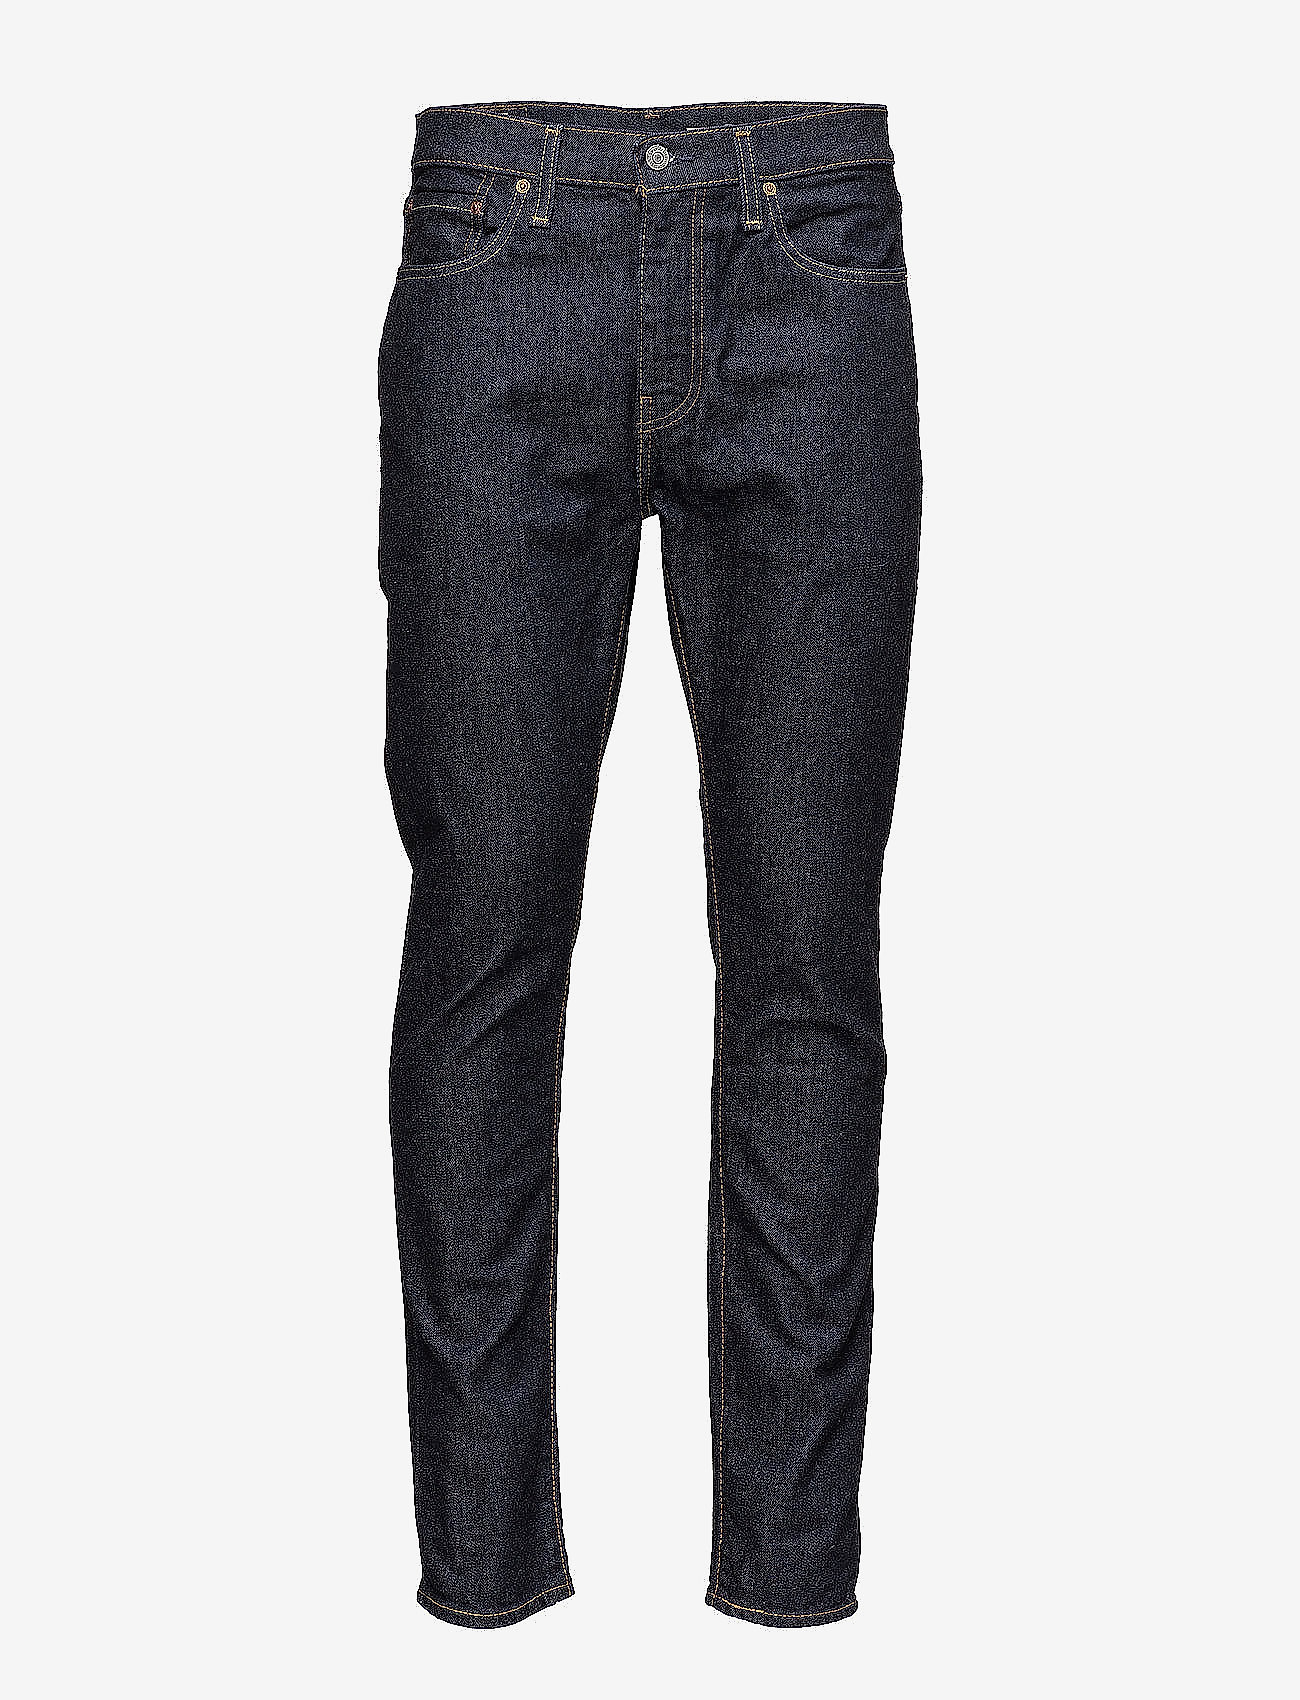 LEVI´S Men - 512 SLIM TAPER FIT ROCK COD - slim jeans - rock cod - 0